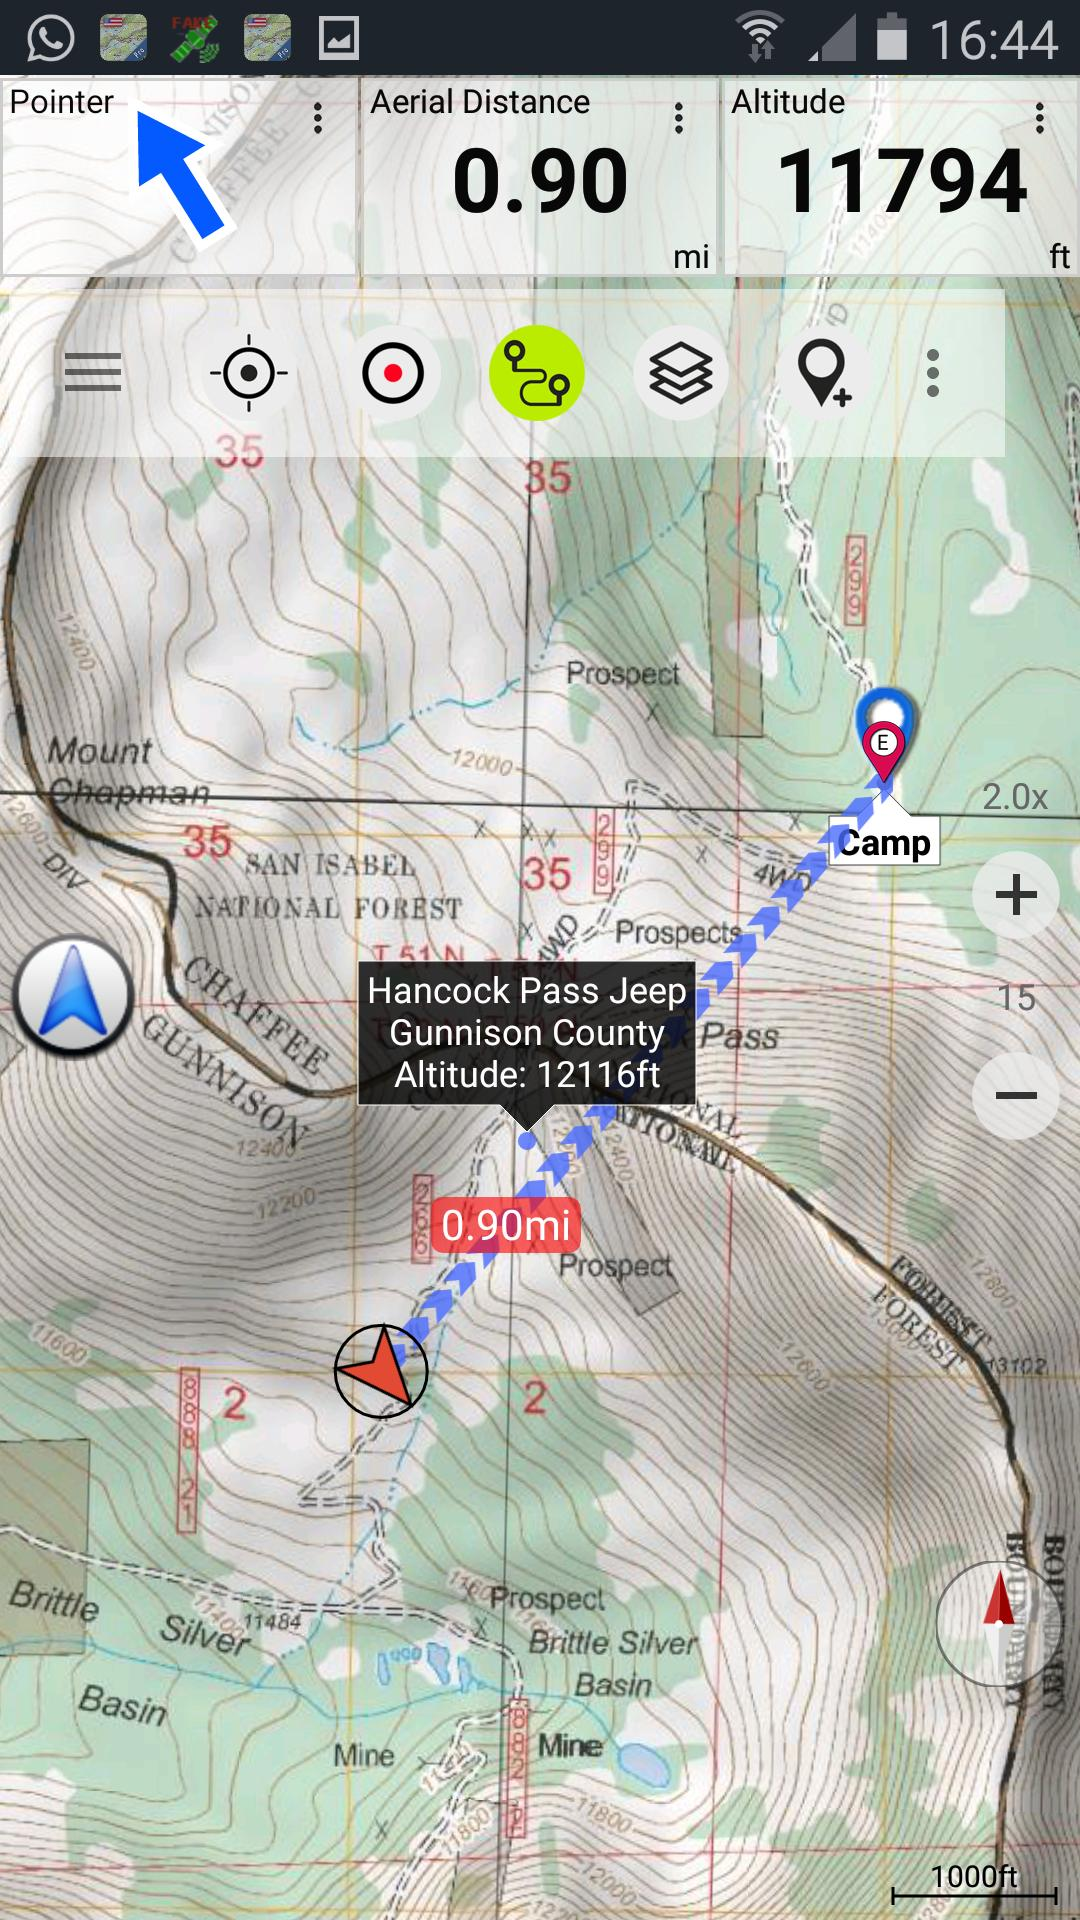 US Topo Maps for Android - APK Download